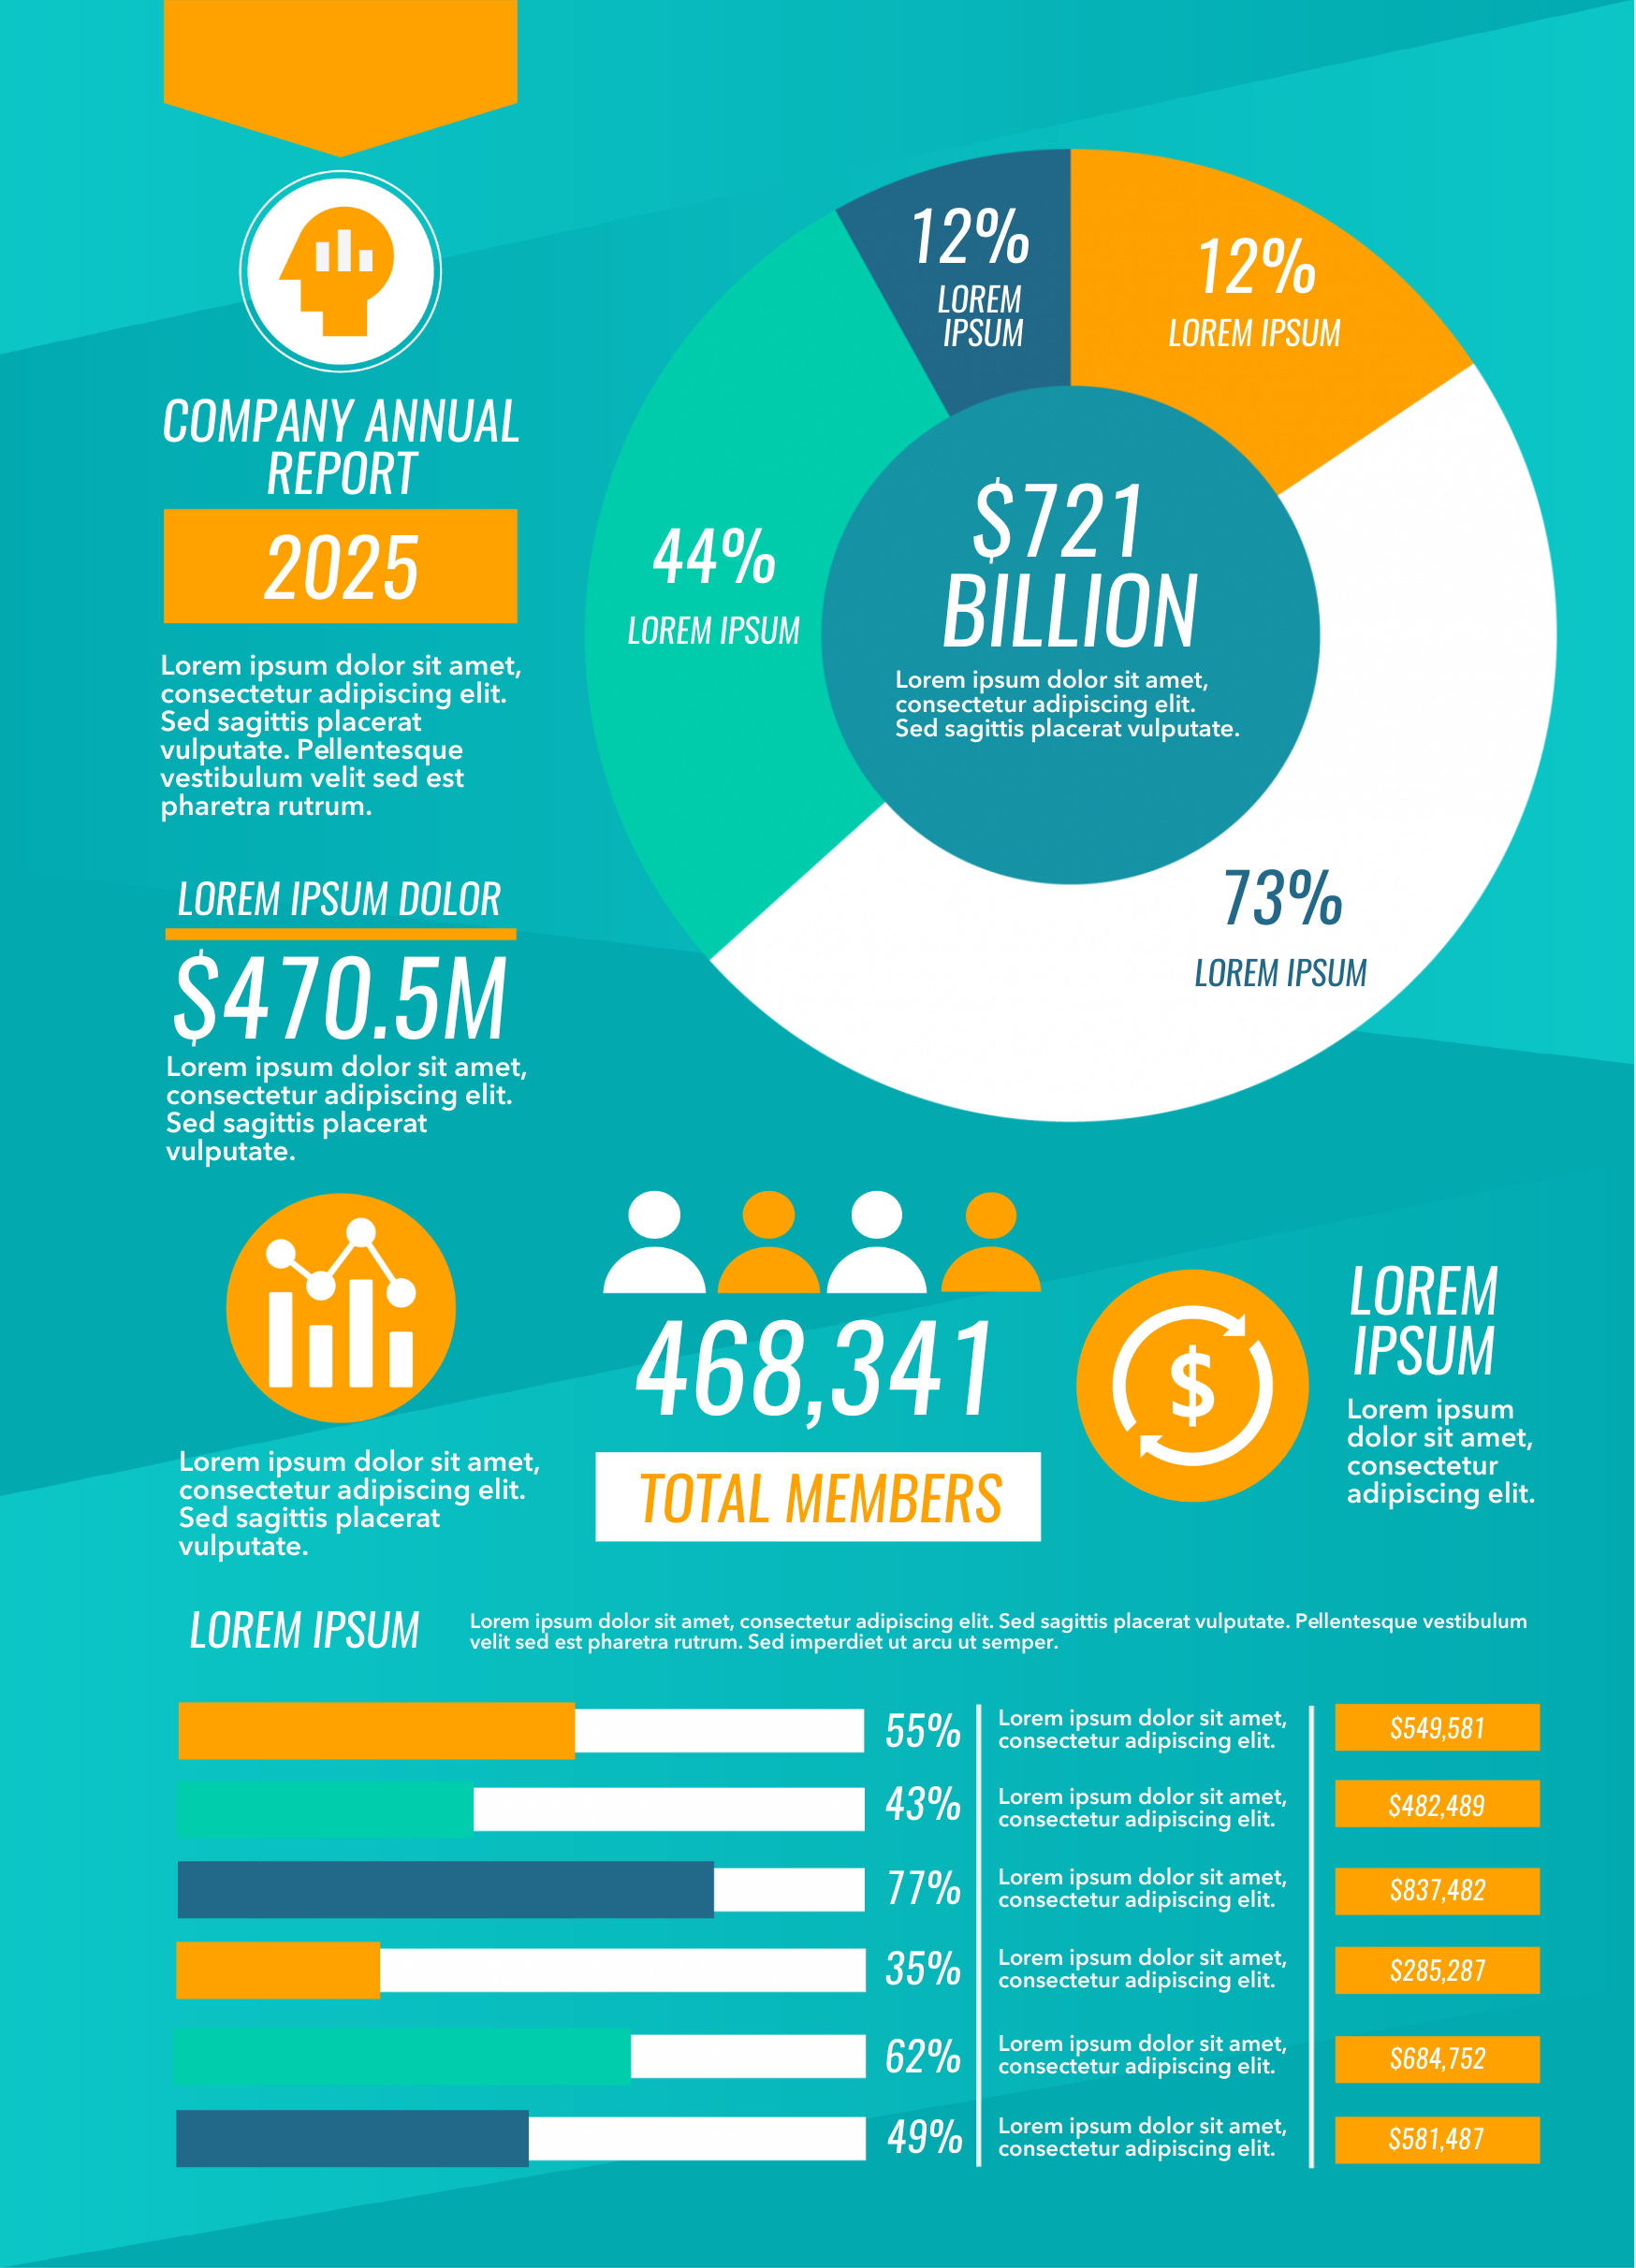 Company annual report infographic